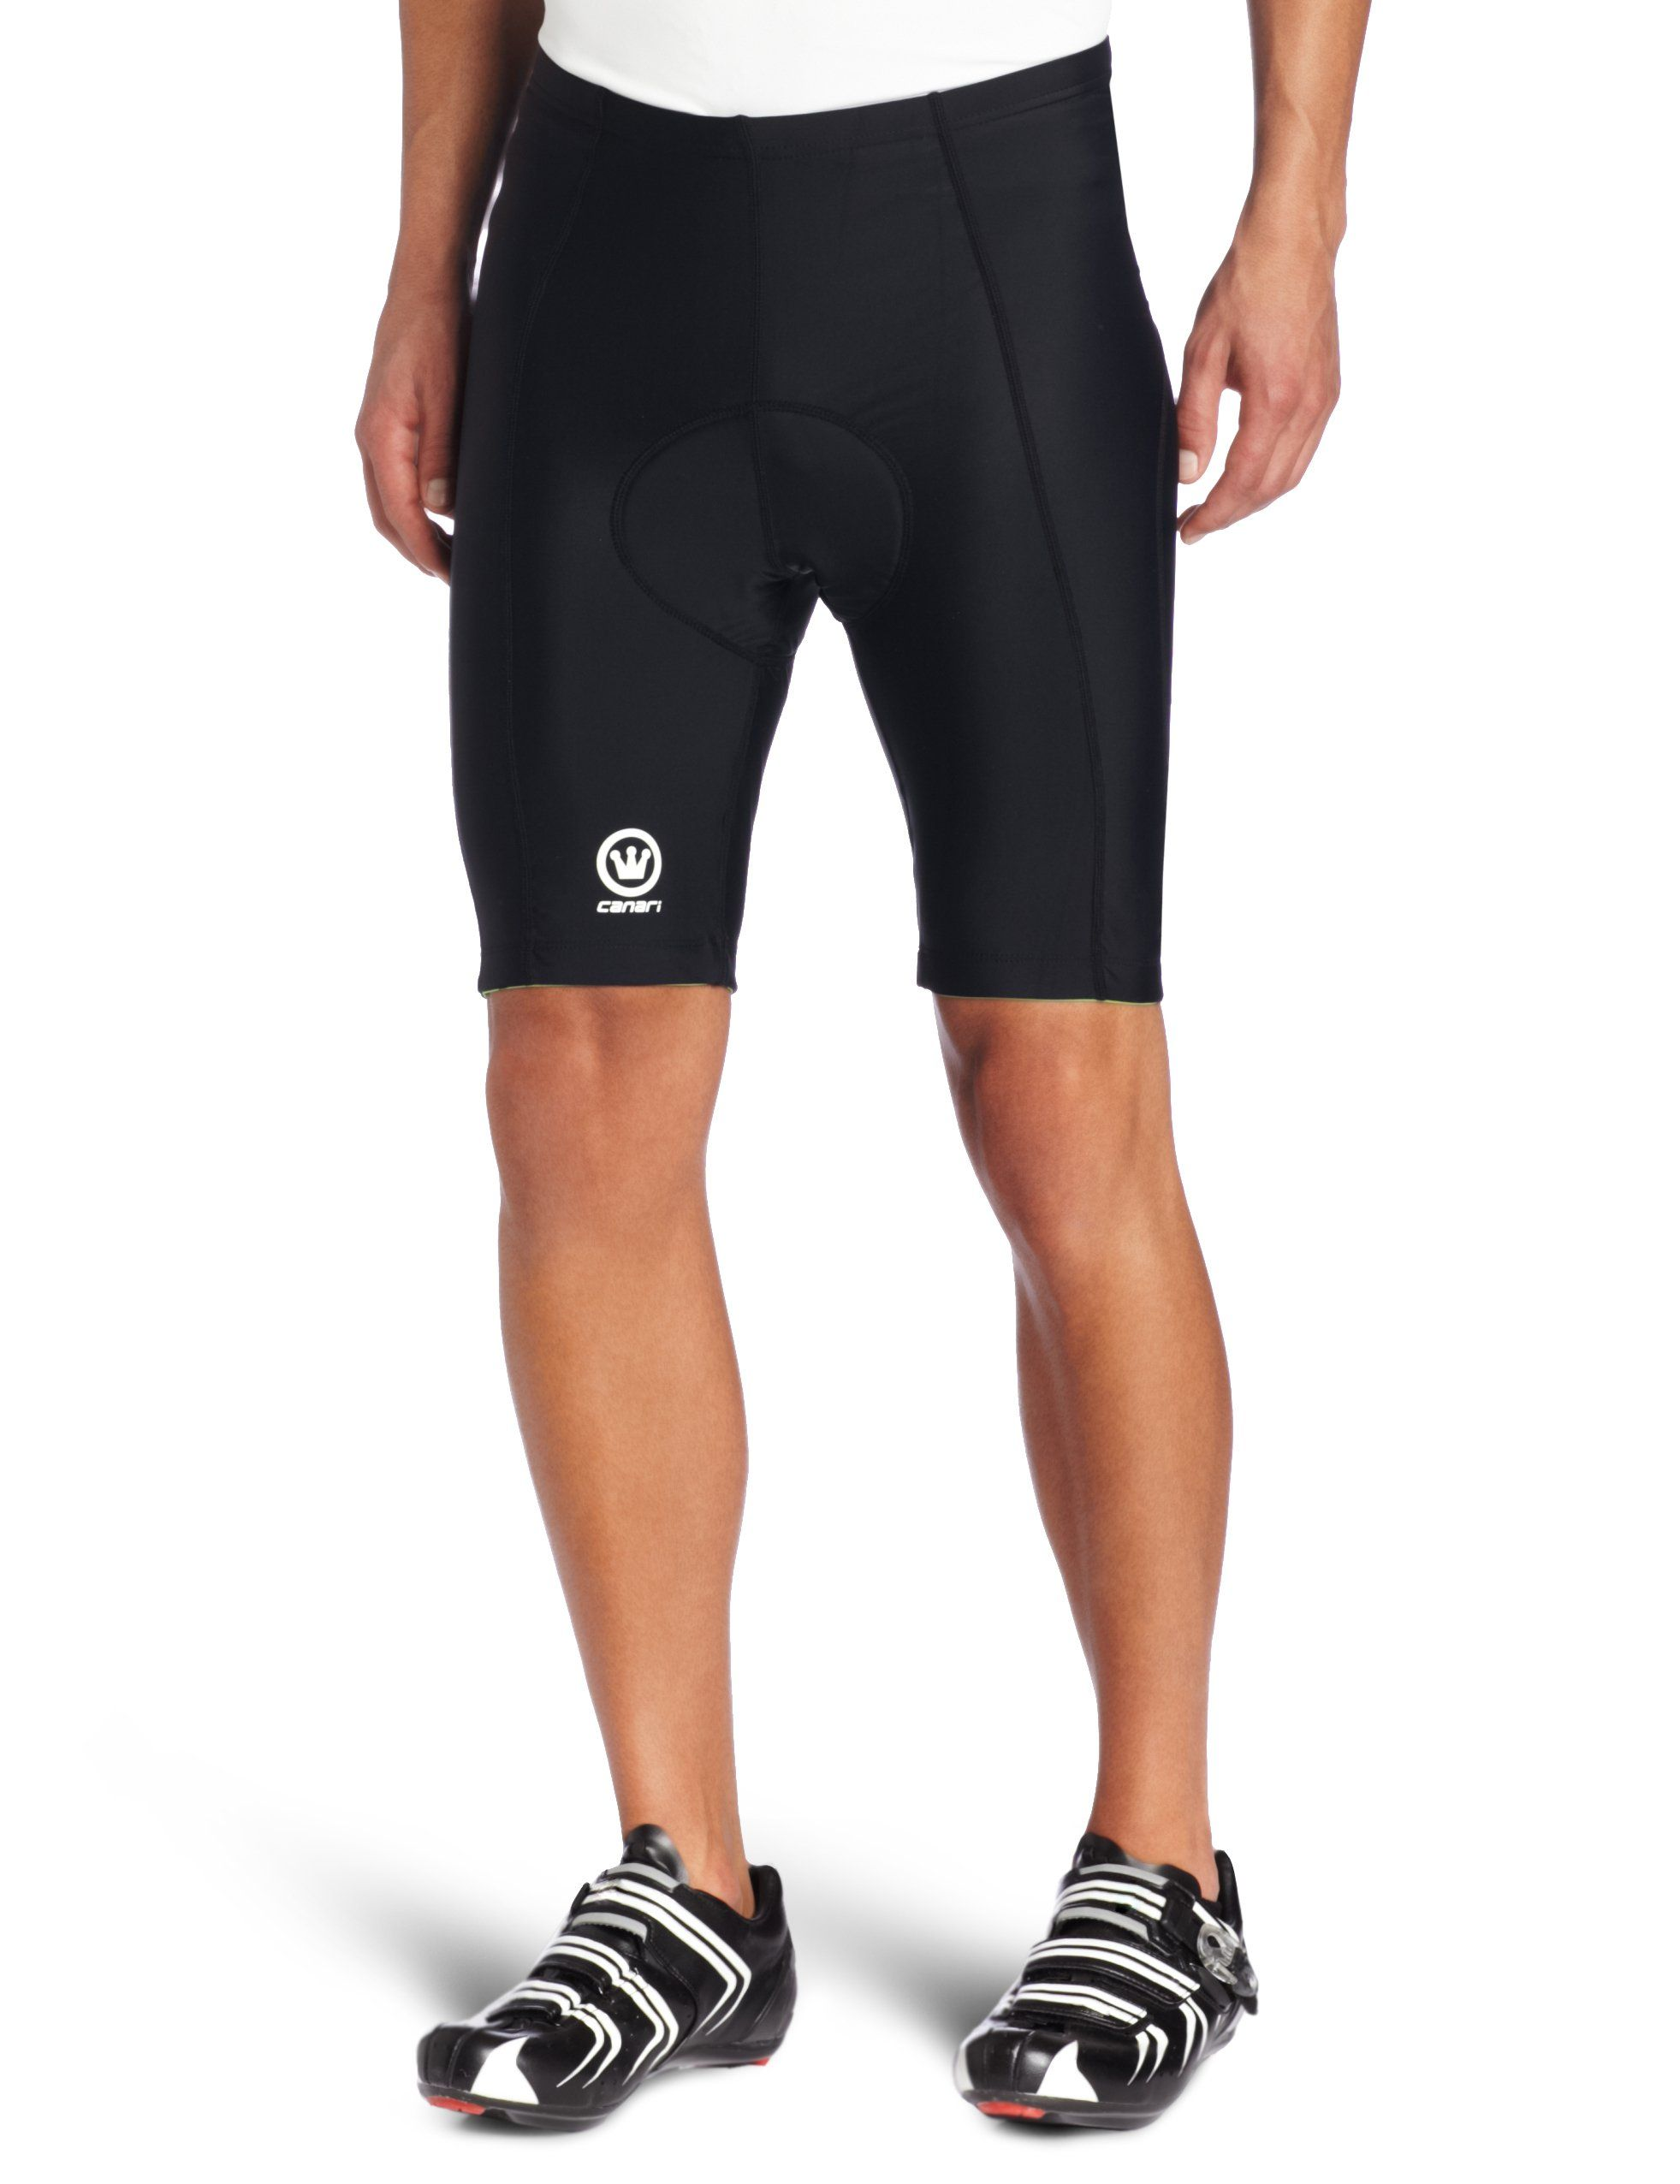 Canari Velo Gel Cycling Short Mens (Black) X-Large. 82% nylon 322786714